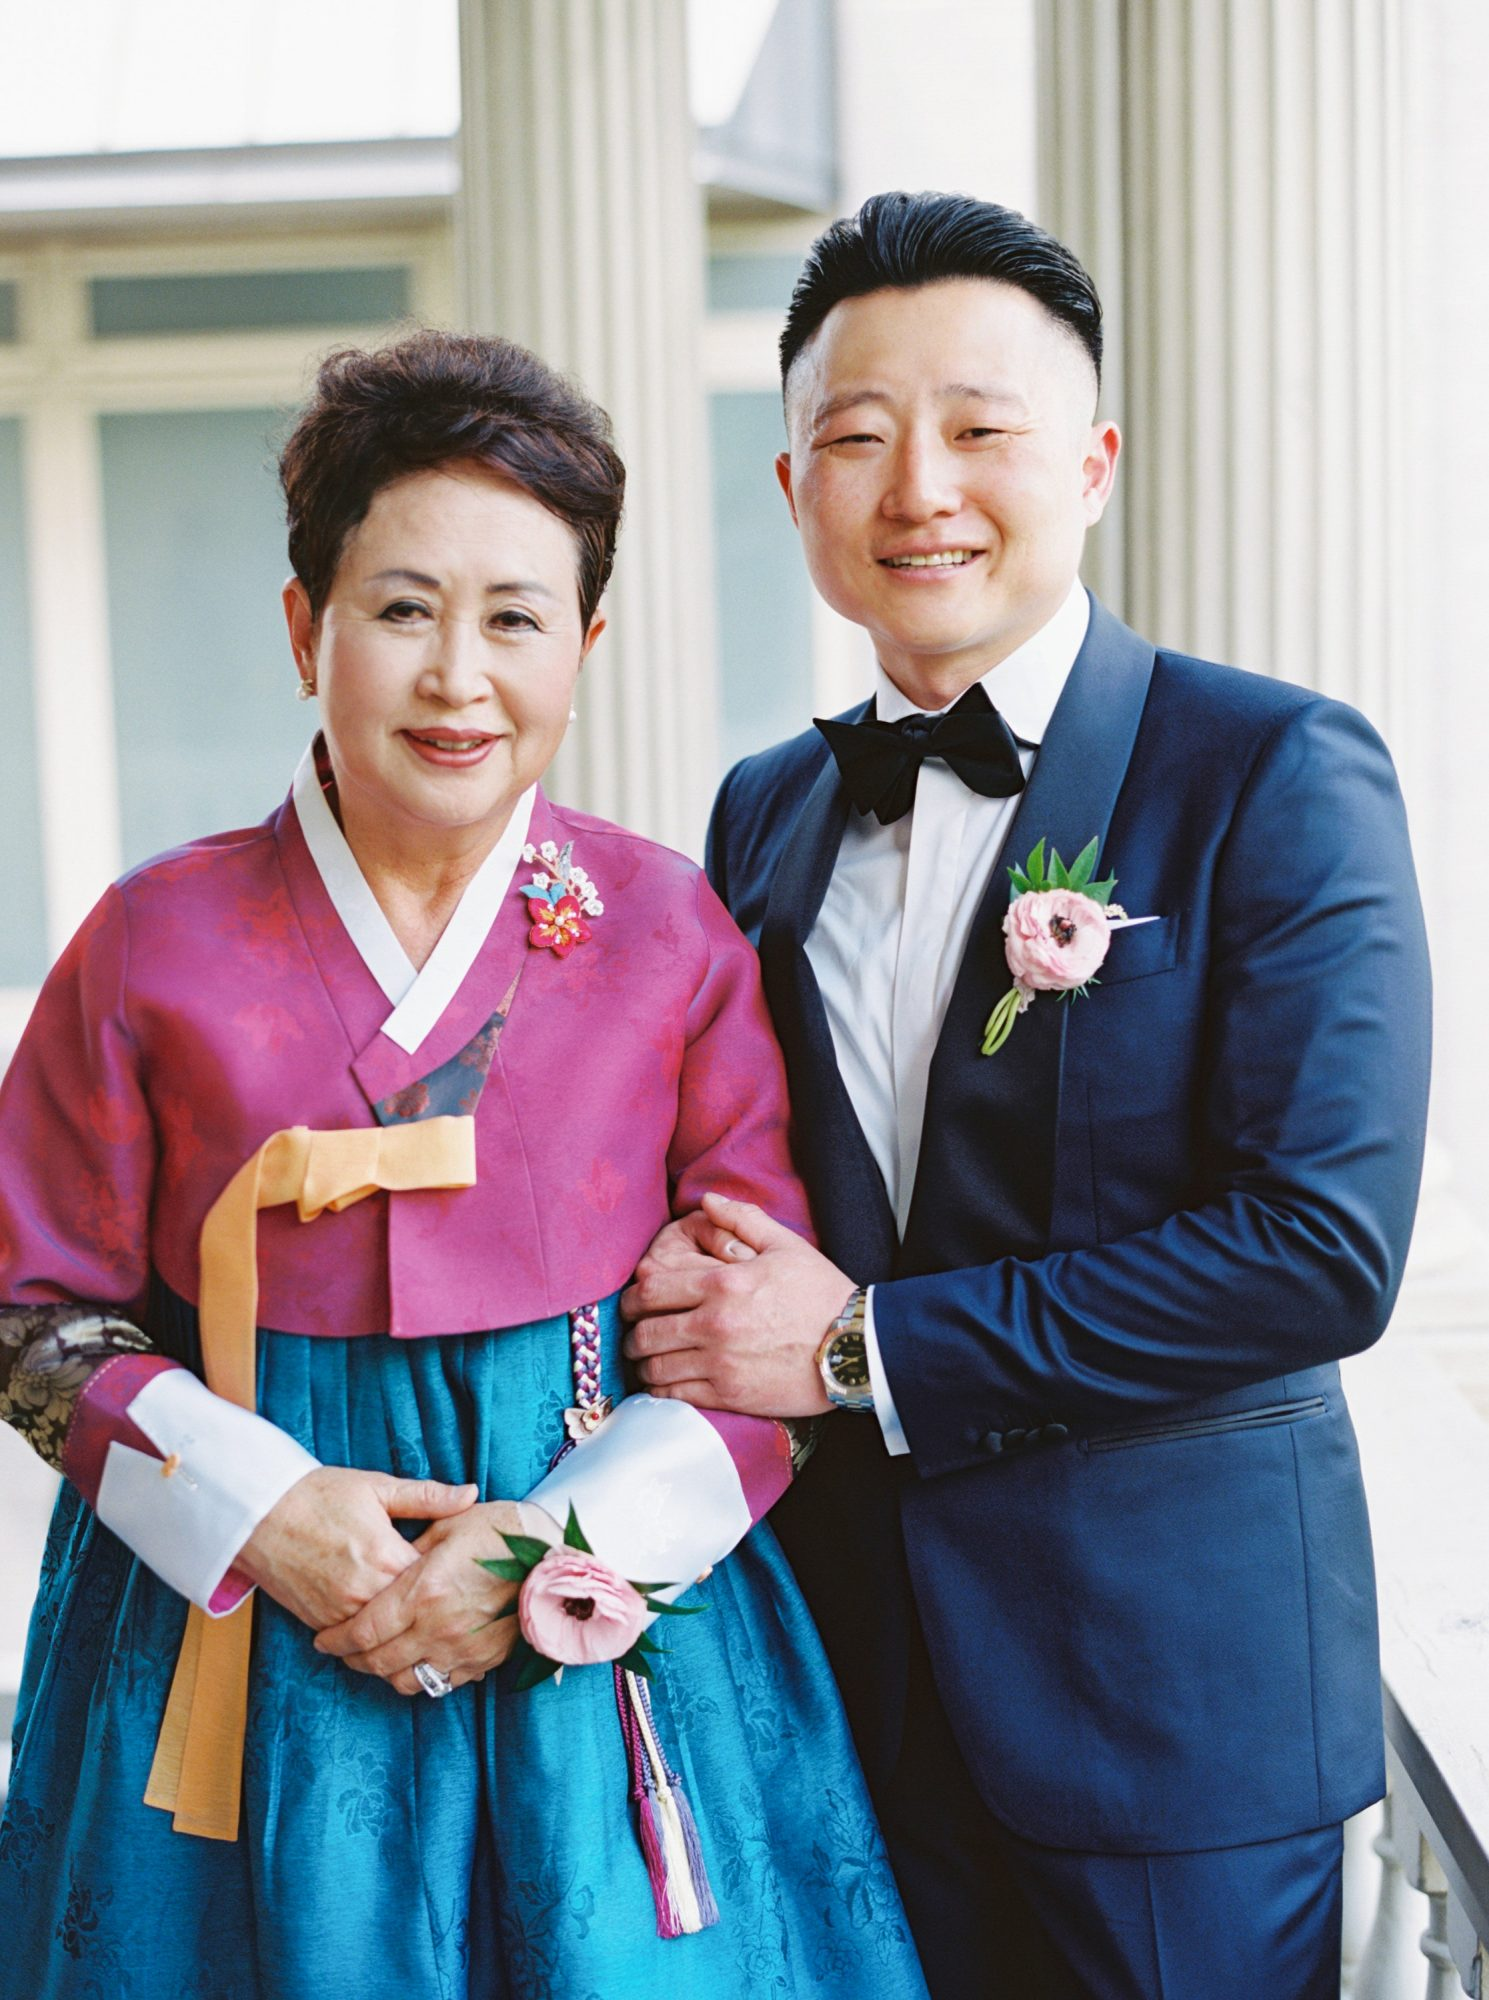 groom posing with mother in wedding attire